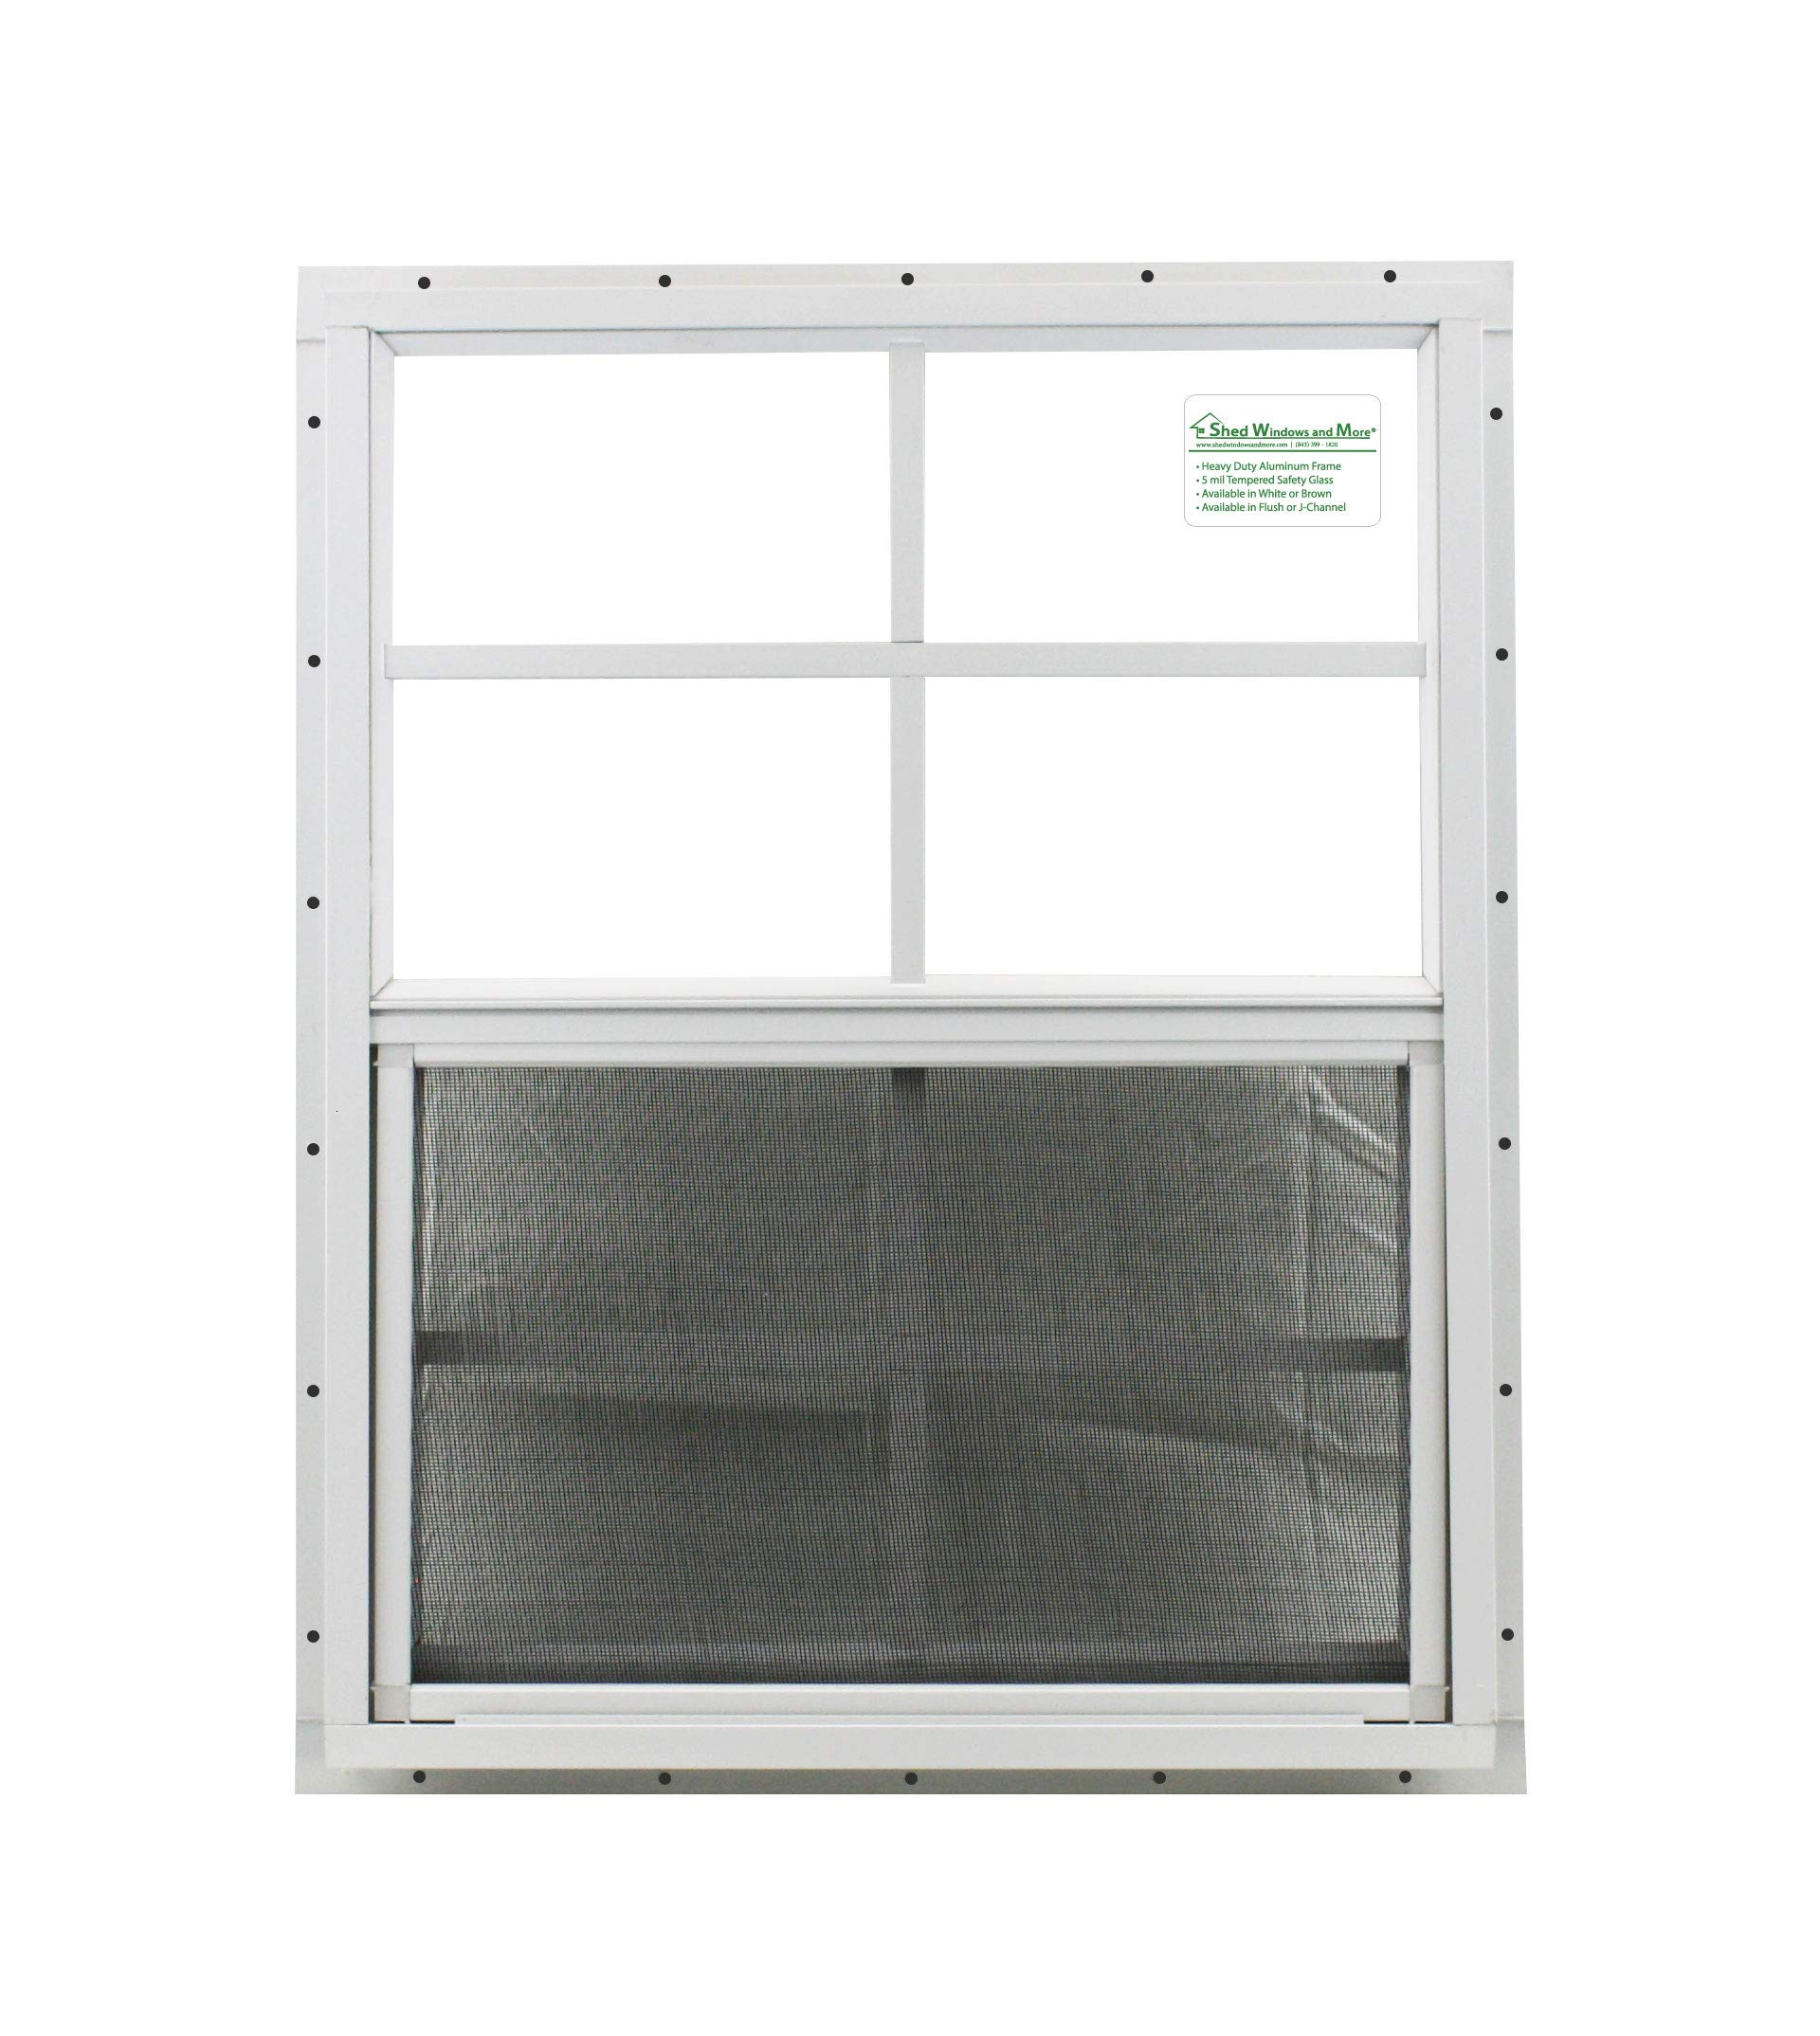 Shed Window 18'' X 23'' White J-channel Mount, SAFETY/TEMPERED GLASS Storage Shed, Playhouse